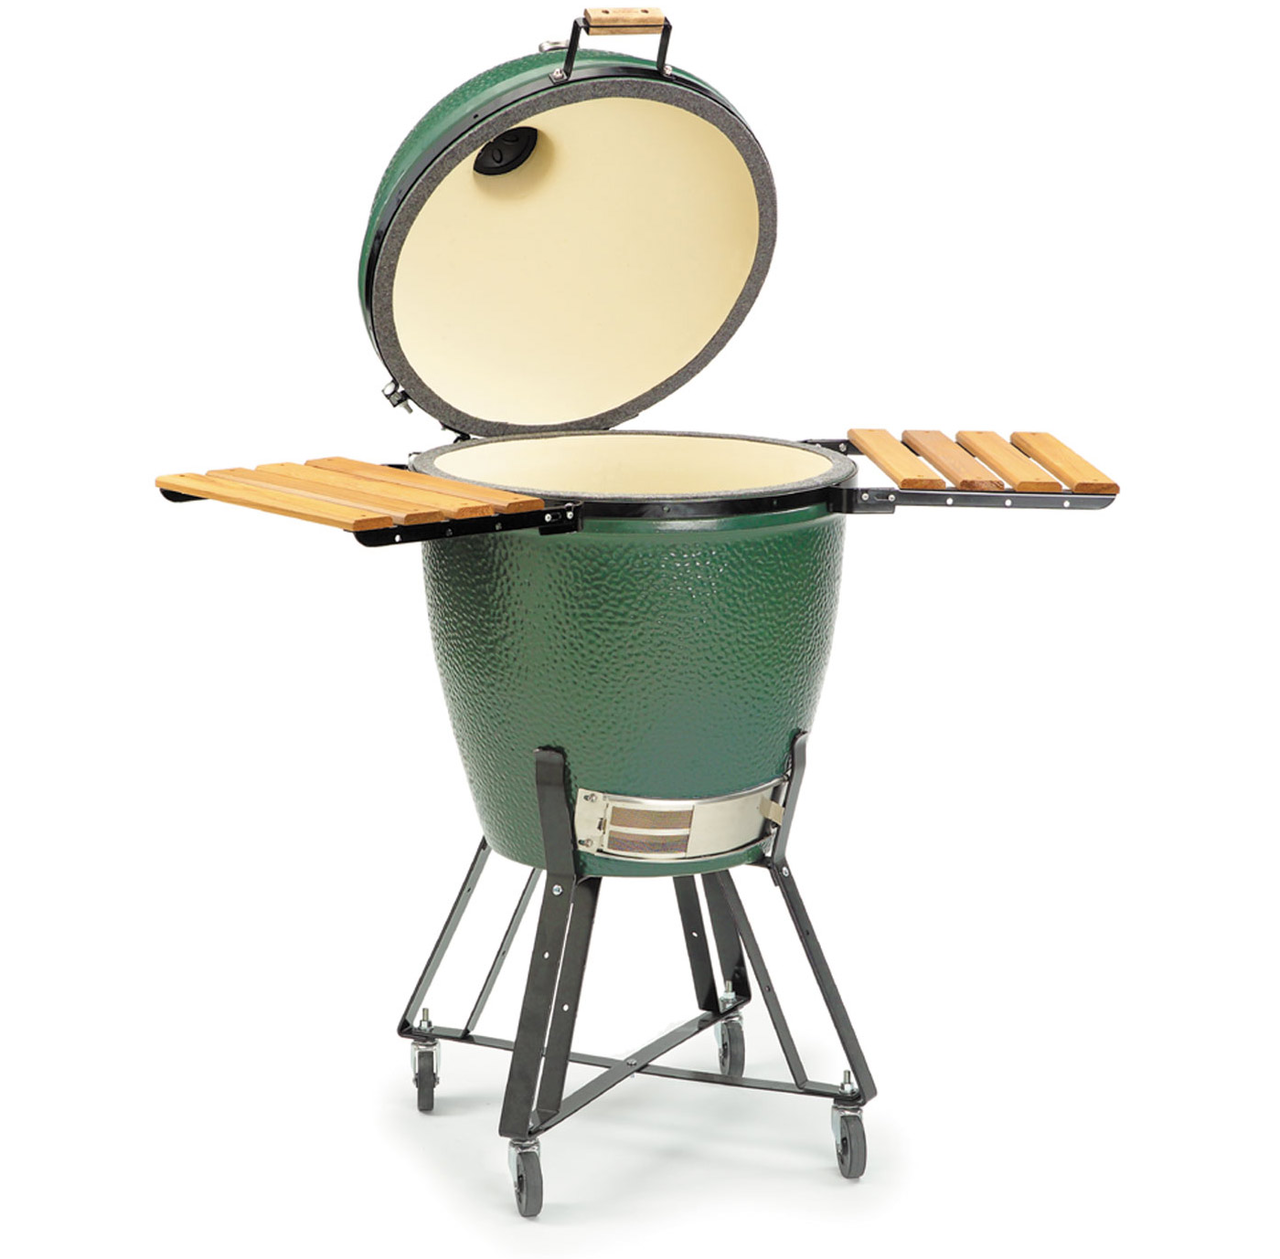 Desire This The Big Green Egg BBQ #A87723